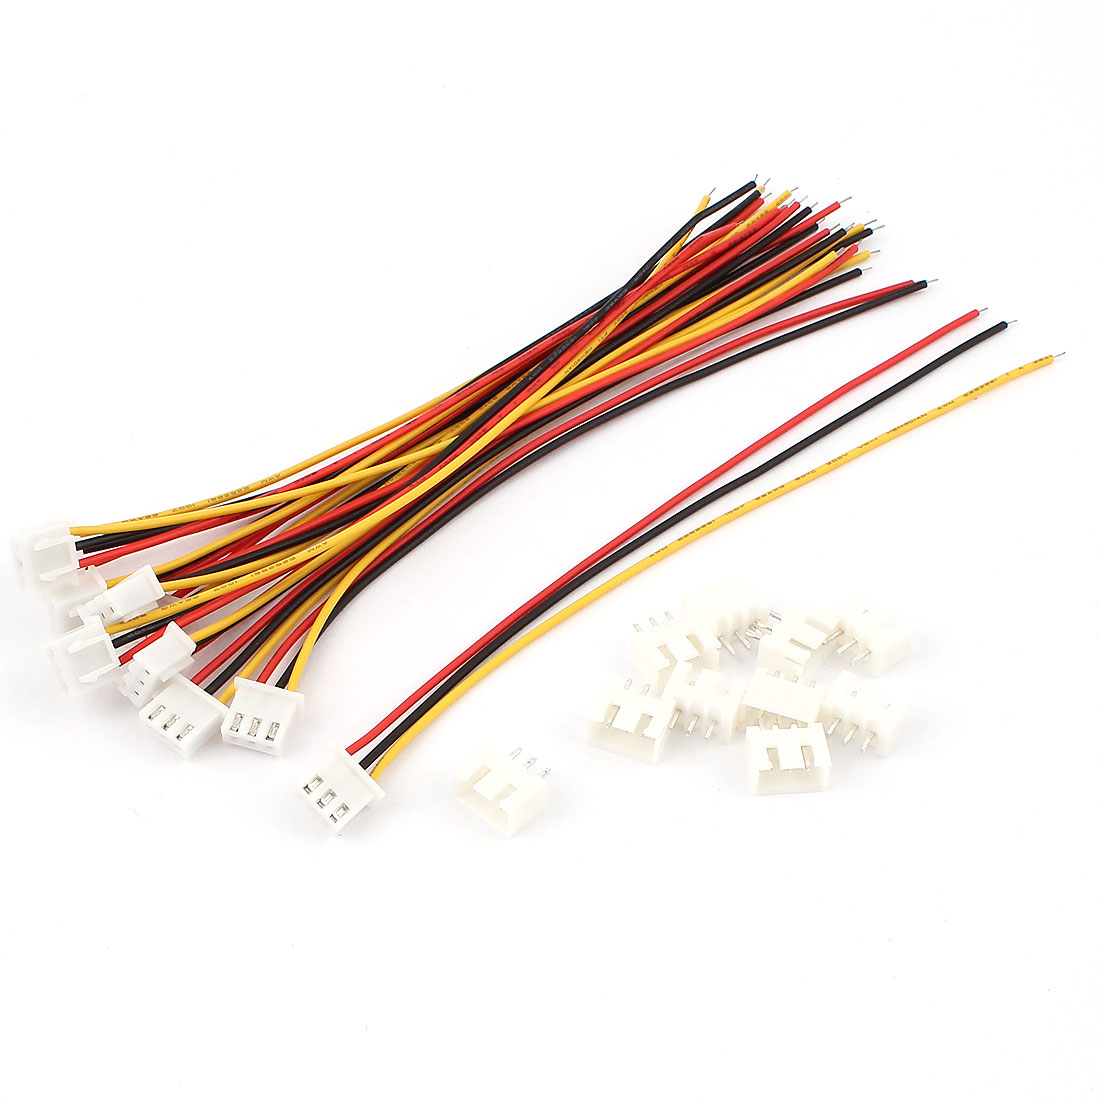 JST XH2.5 3Pole Balance Connector Extension Wire Set for 2S 7.4V Lipo Battery